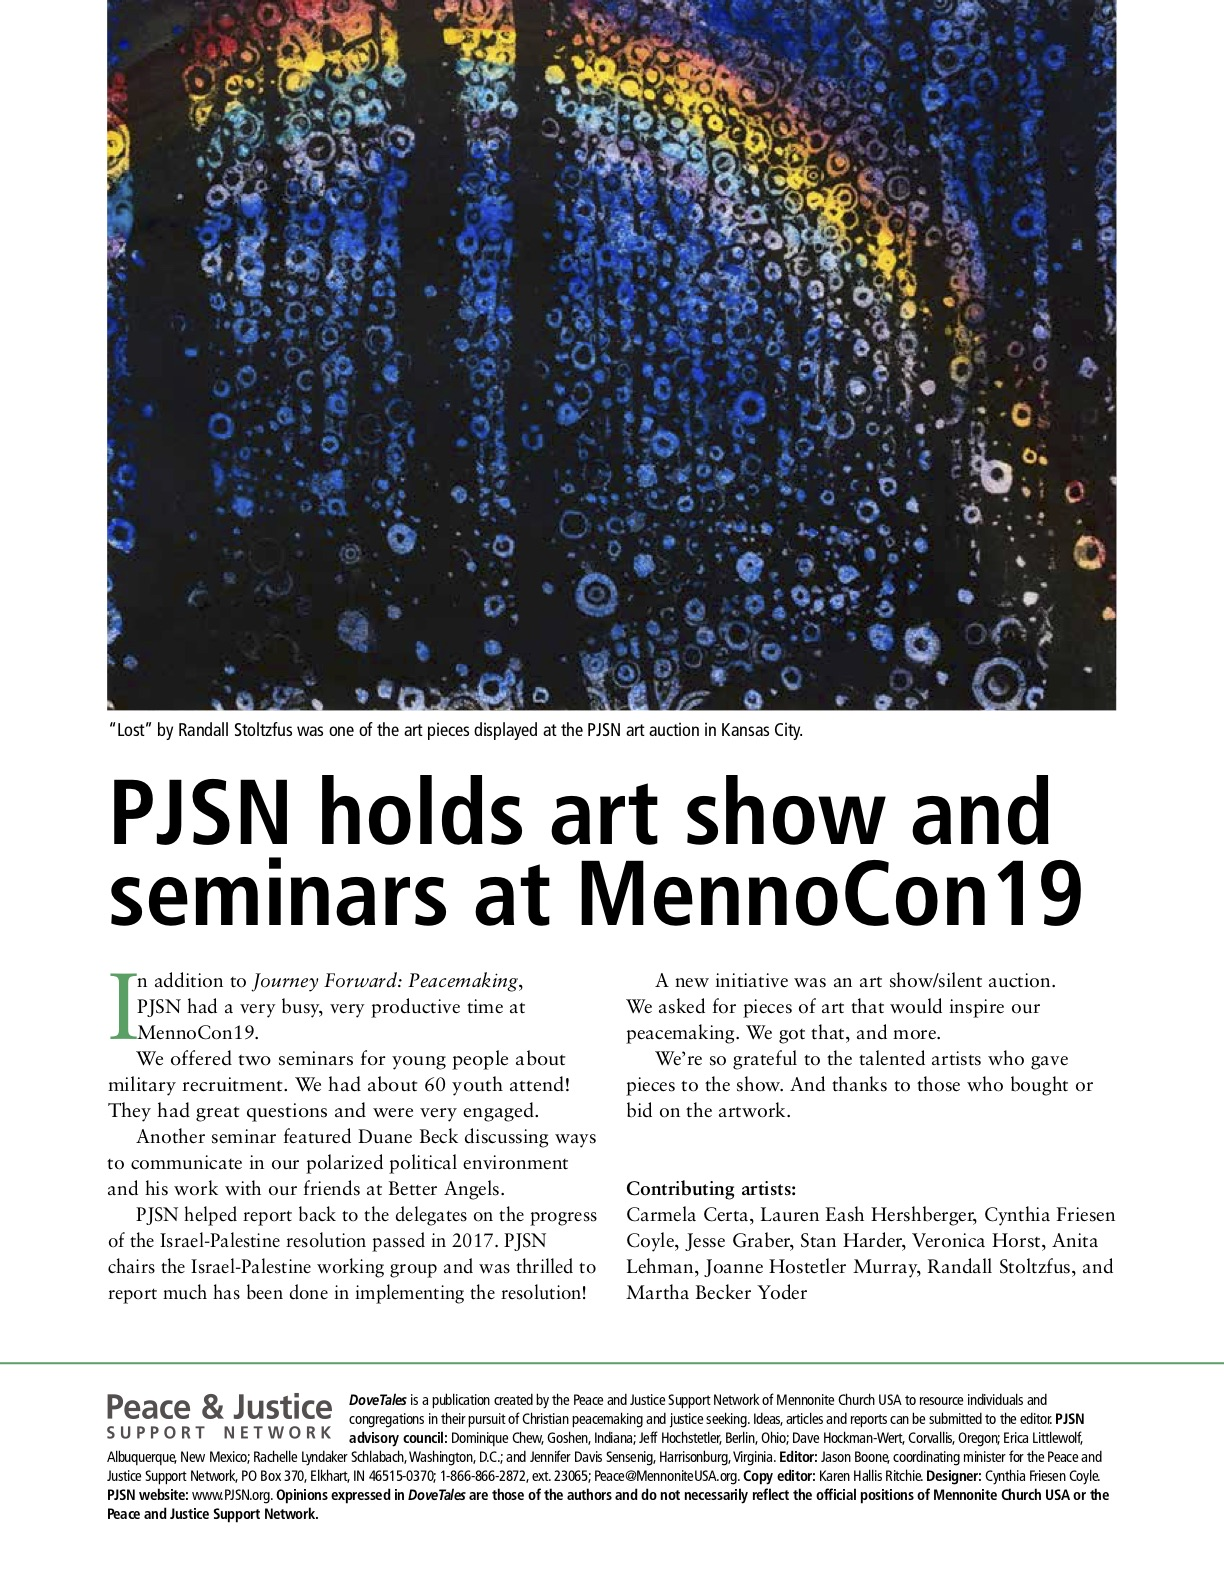 Lost Rainbow #3 was featured on page 2 of the August 19 issue of PJSN's biannual newsletter, Dove Tales.